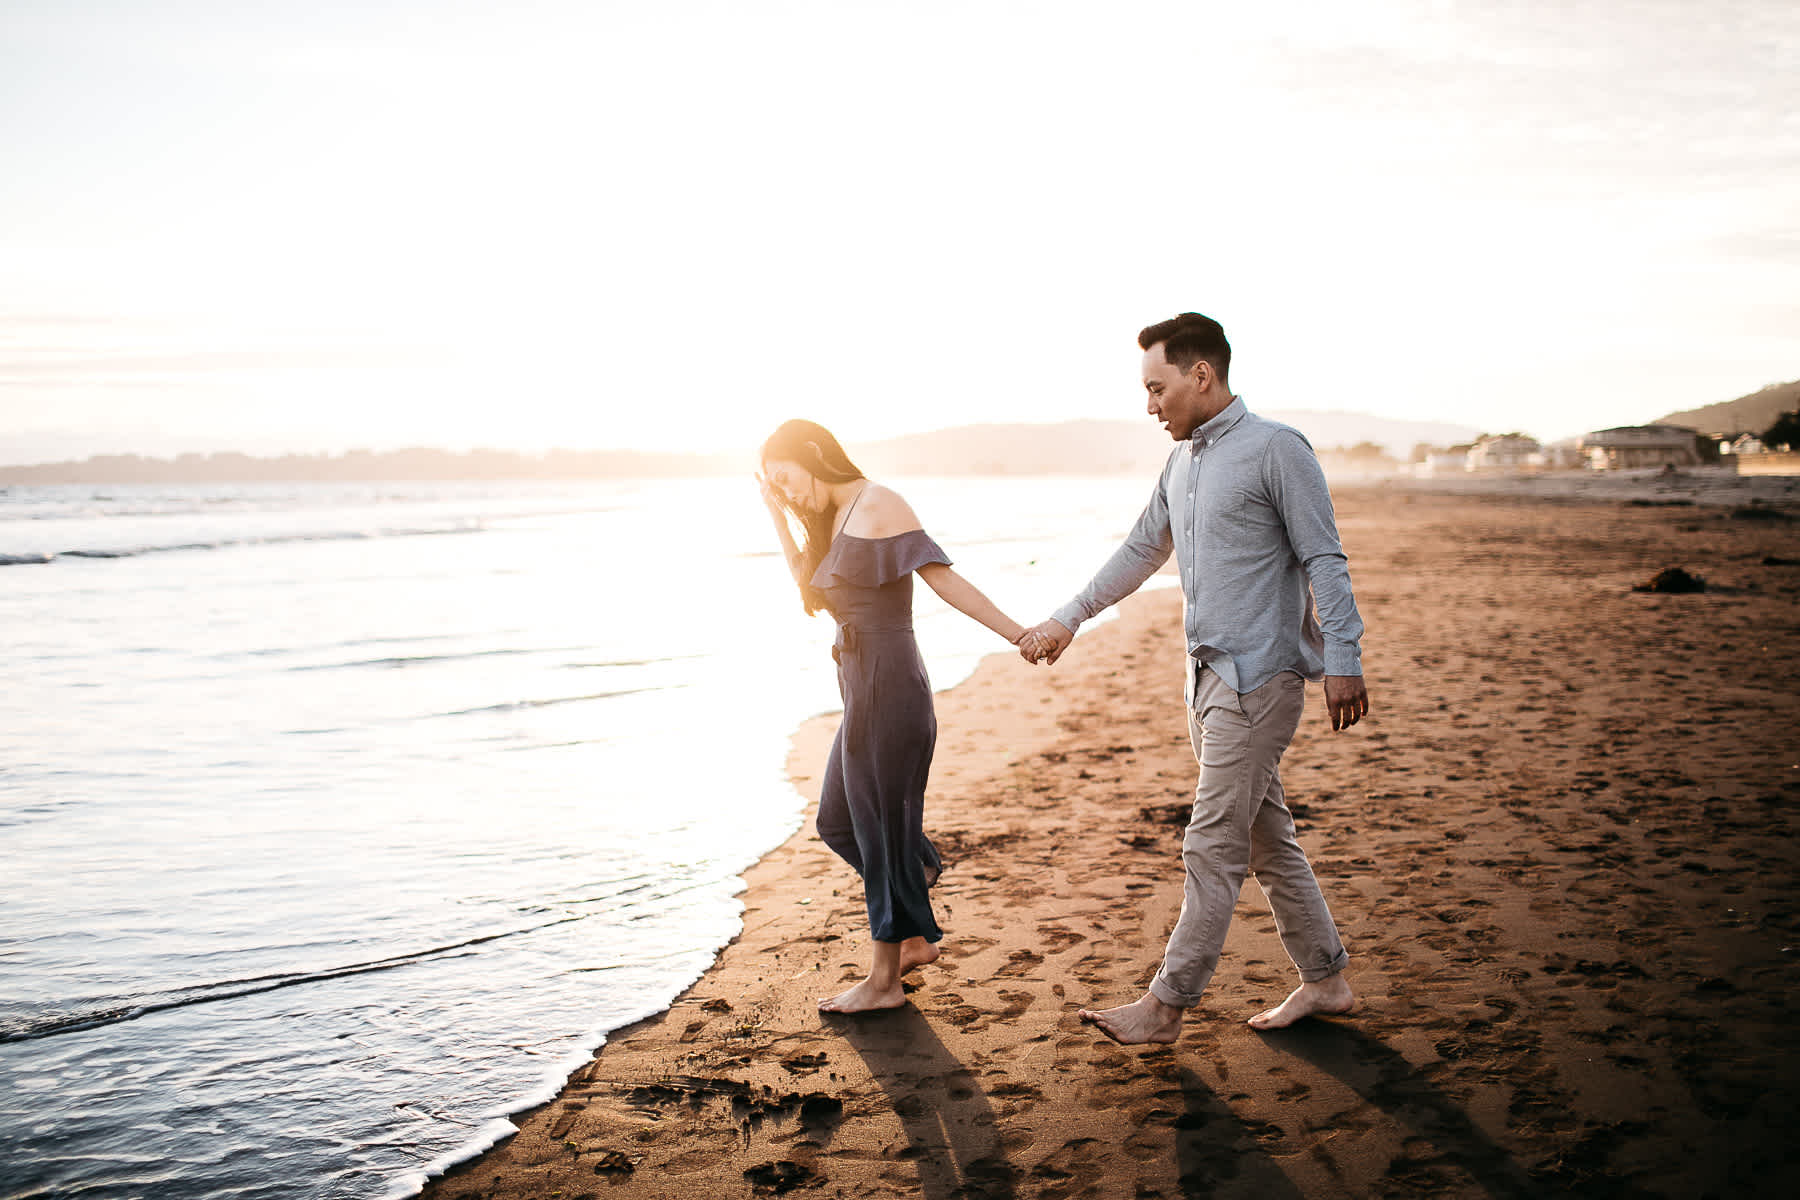 stinson-beach-muir-woods-sf-fun-quirky-engagement-session-18